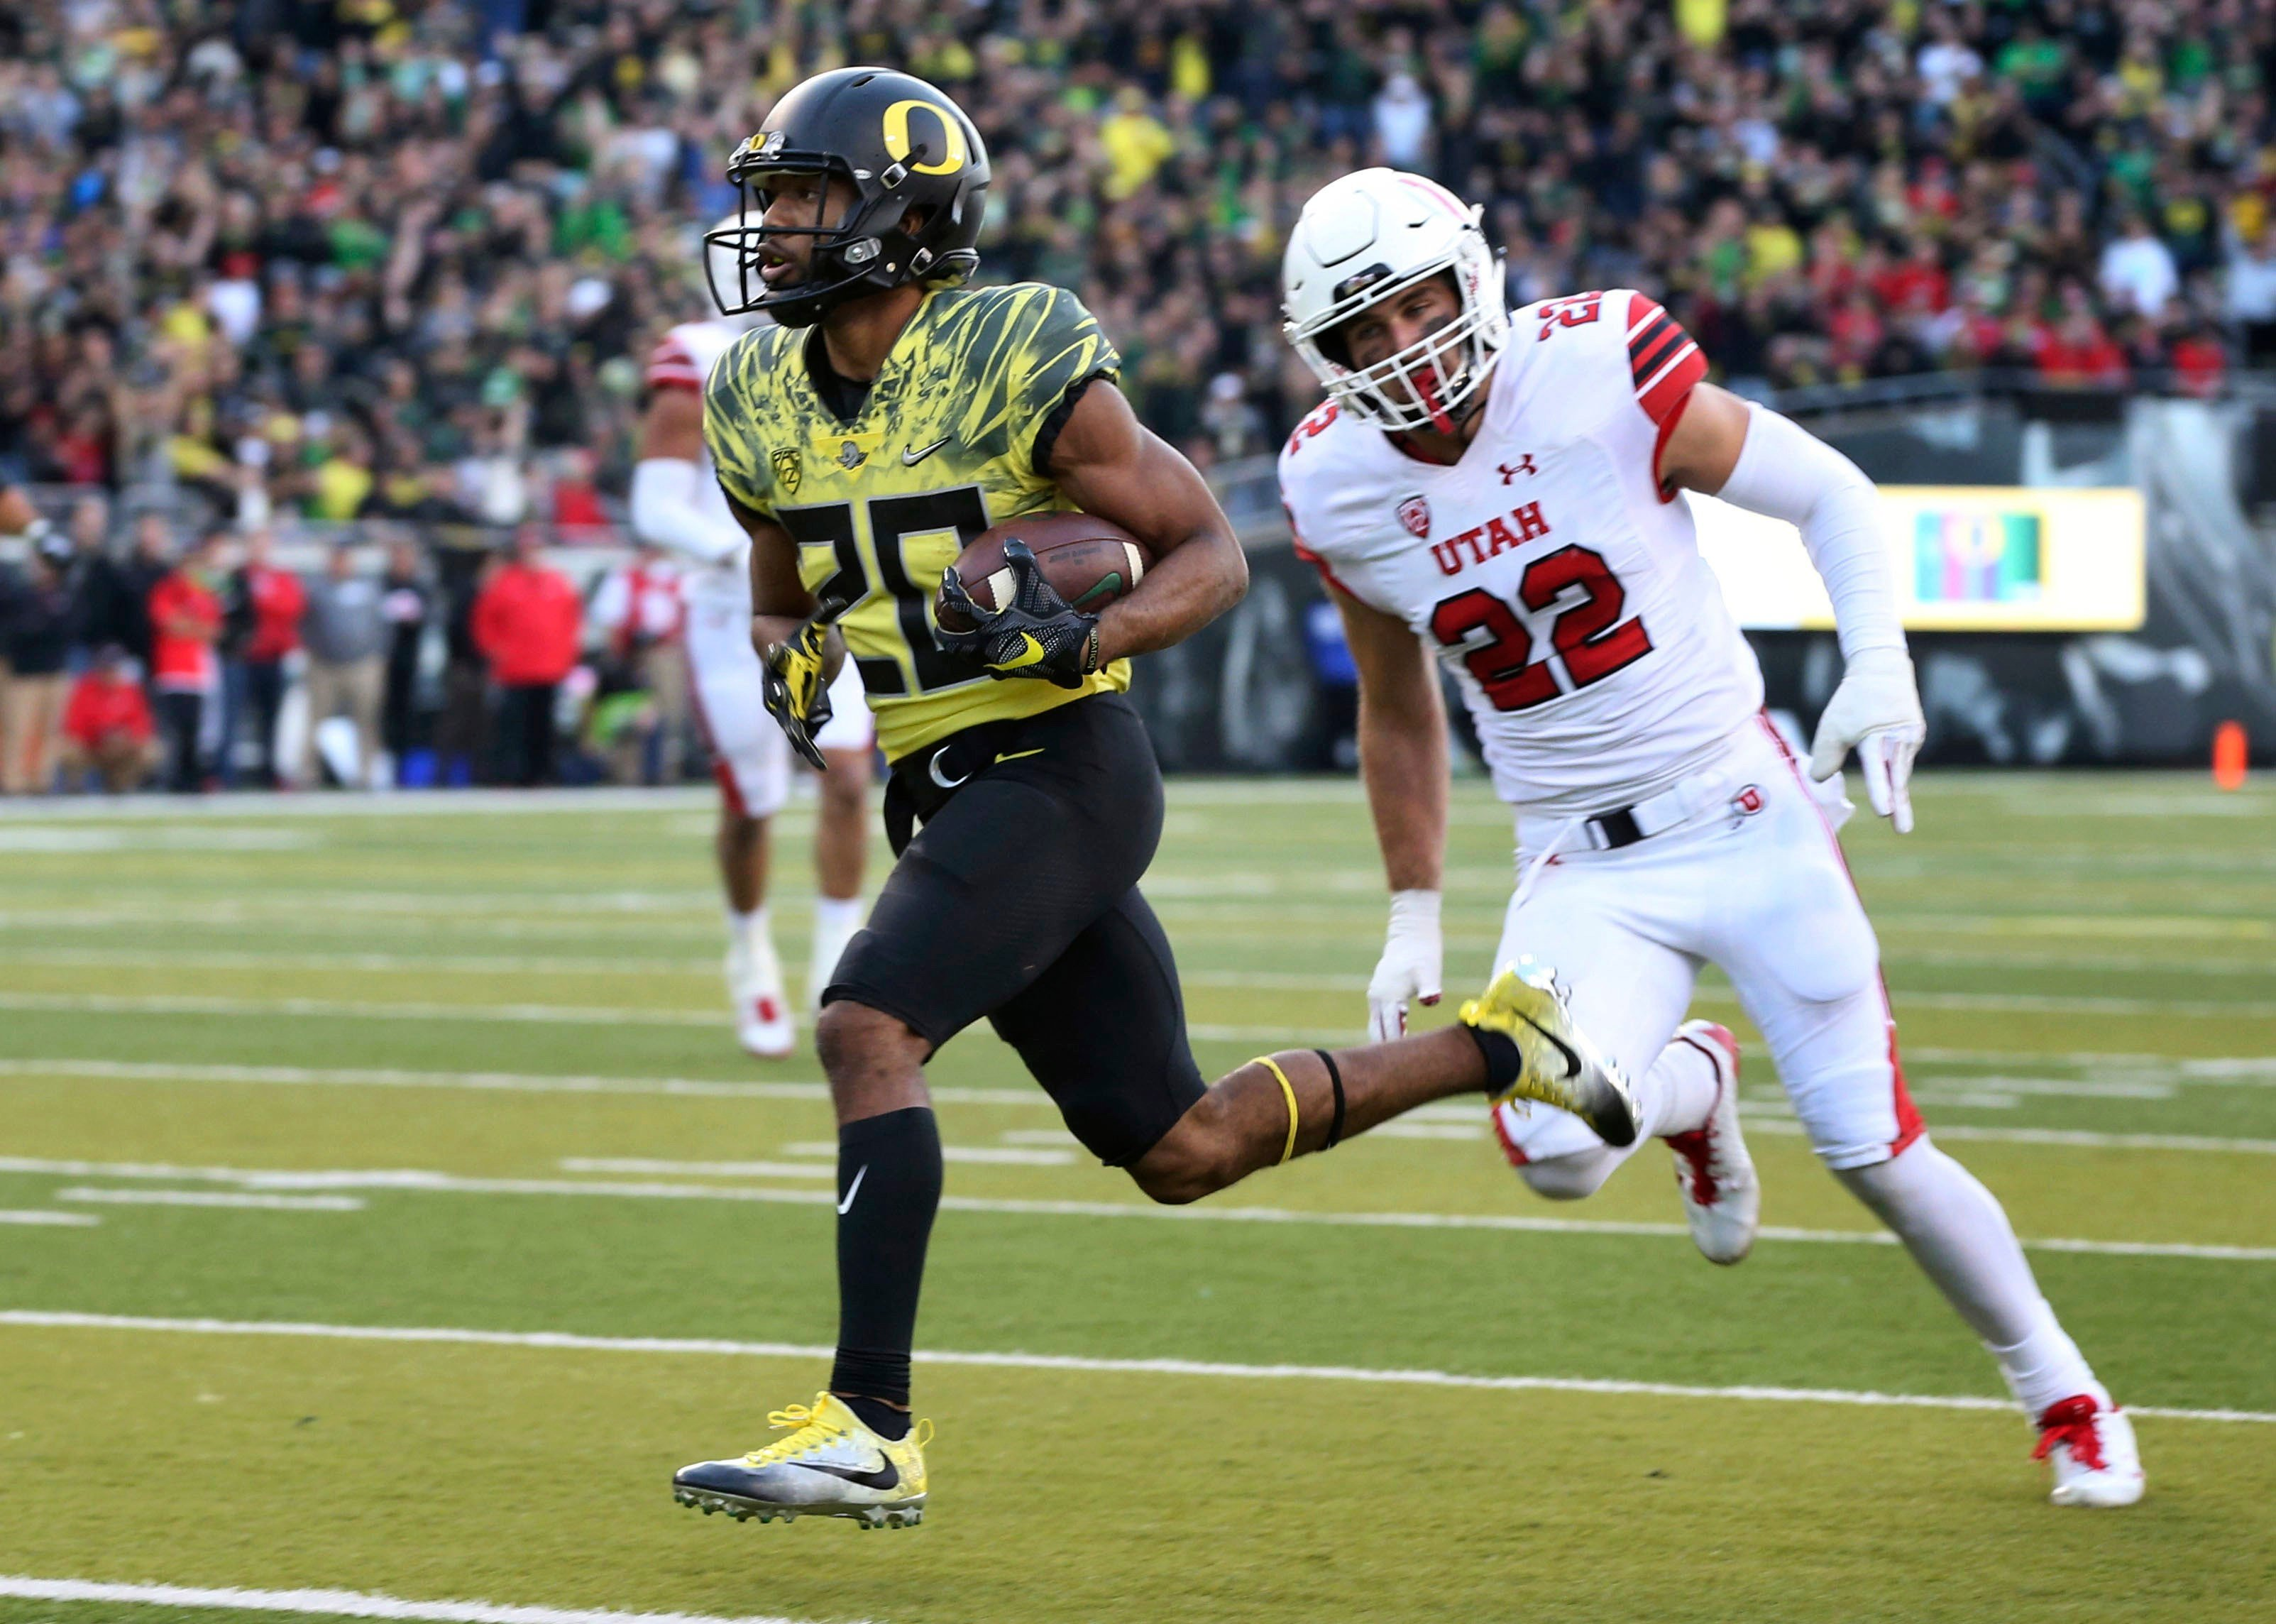 Oregon running back Tony Brooks-James, left, scores a touchdown ahead of Utah's Chase Hansen during the fourth quarter of an NCAA college football game Saturday, Oct. 28, 2017, in Eugene, Ore. (AP Photo/Chris Pietsch)